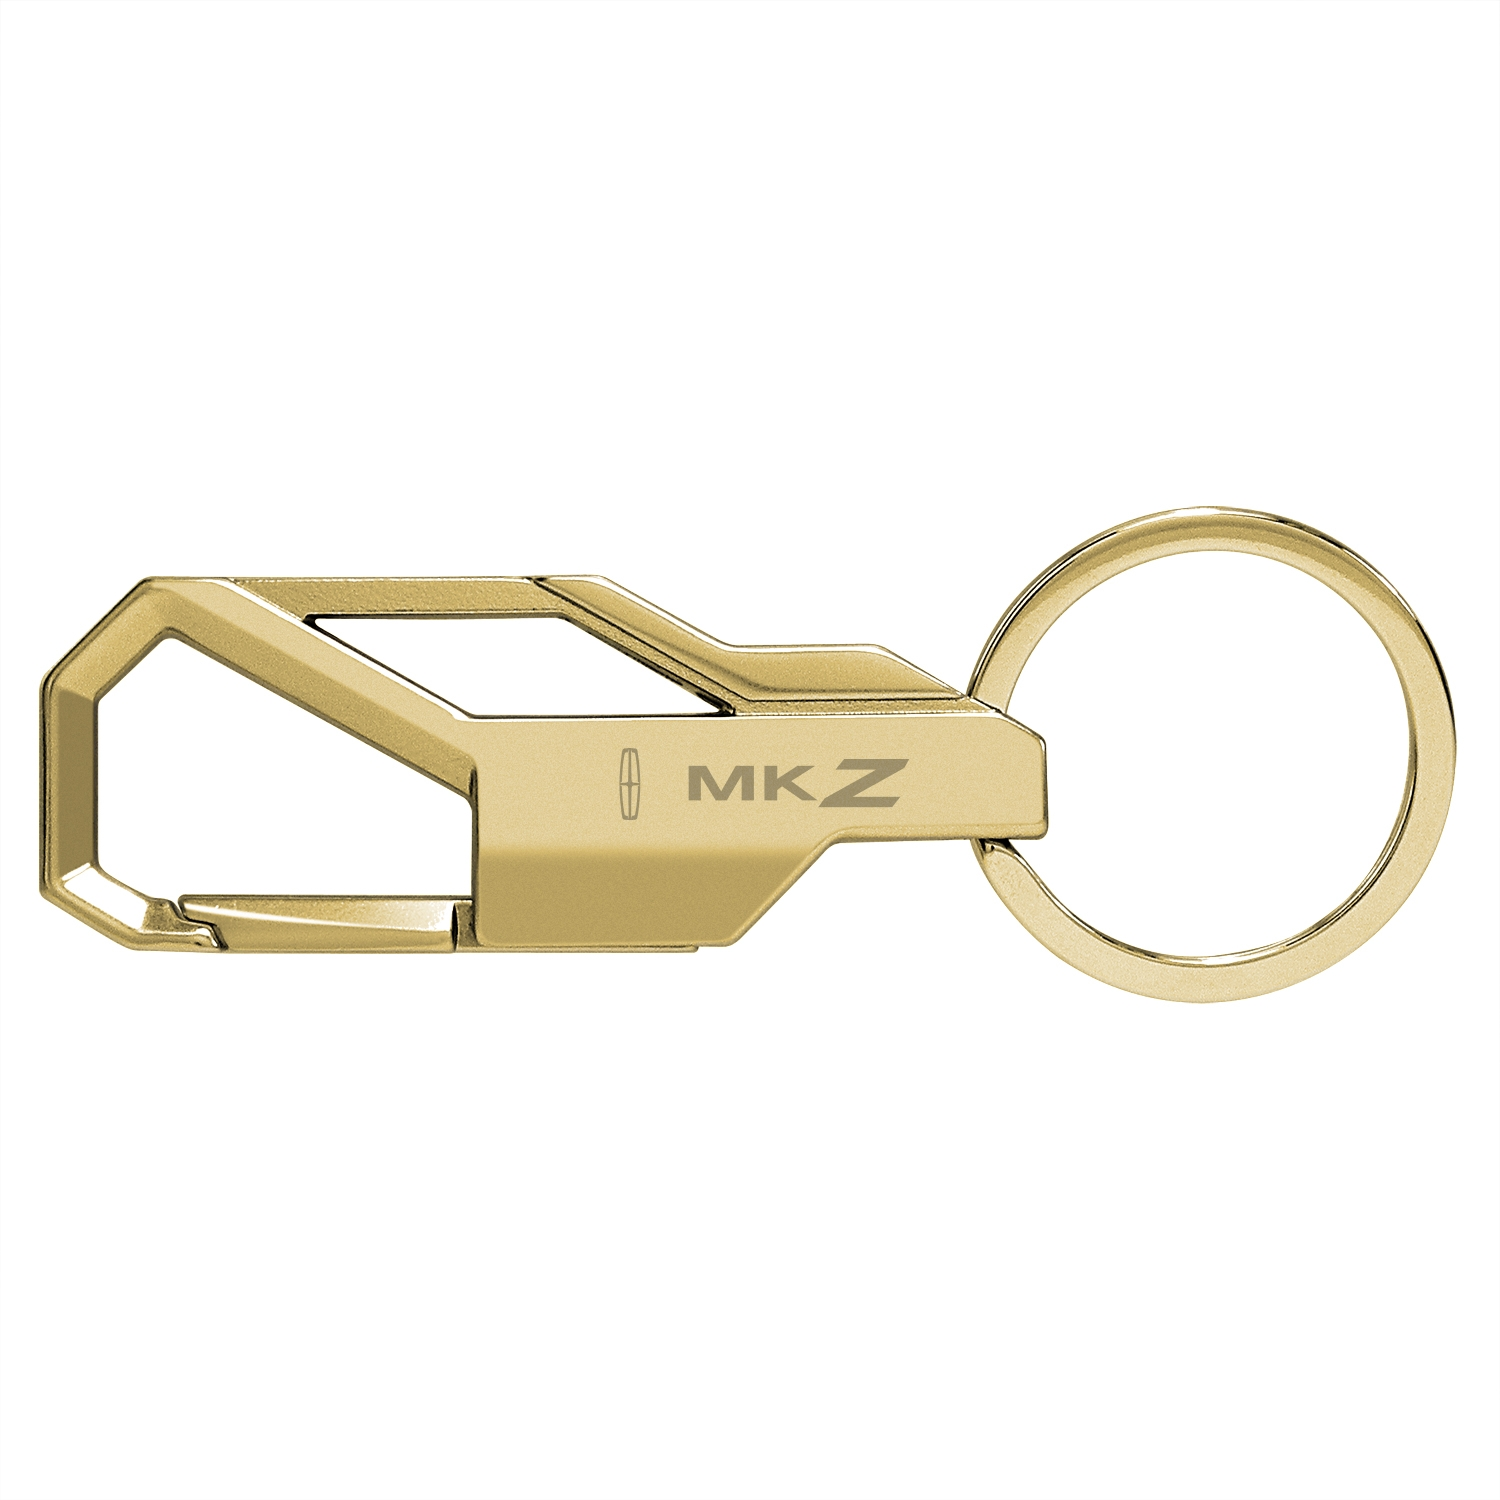 Lincoln MKZ Golden Snap Hook Metal Key Chain